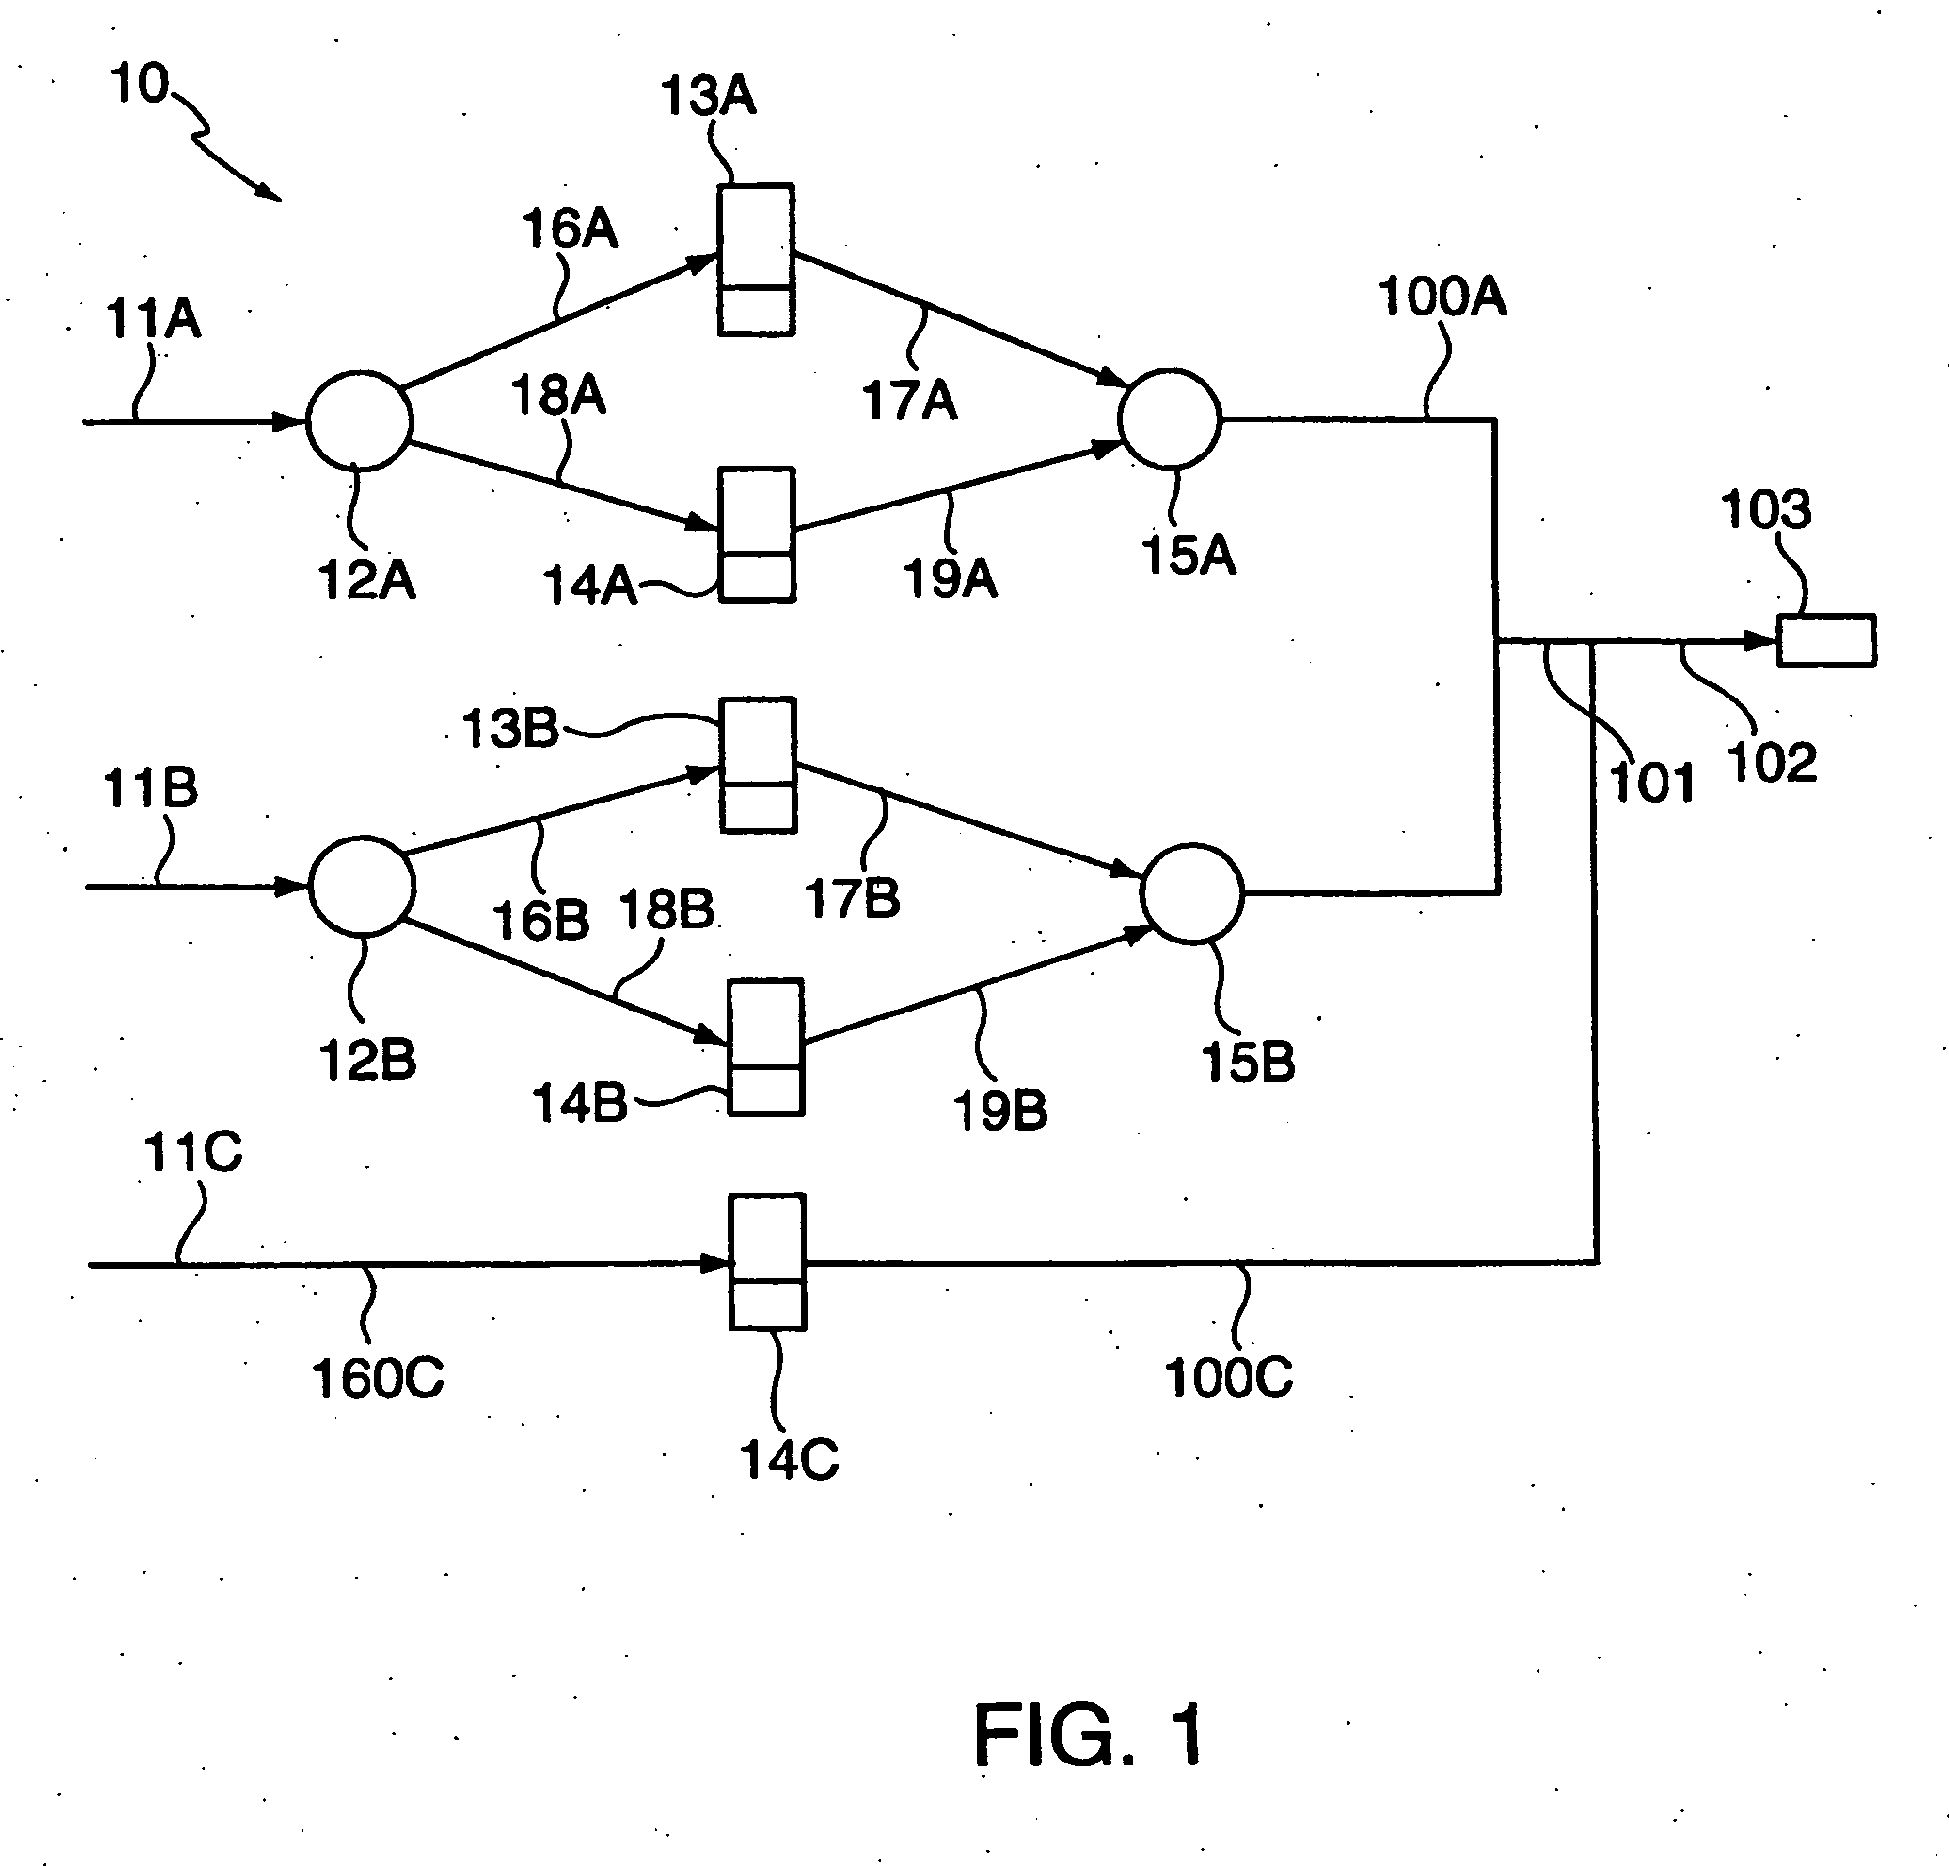 patent ep1447102b1 cyclohexylethan 1 yl ester mixtures as malodour  patent drawing